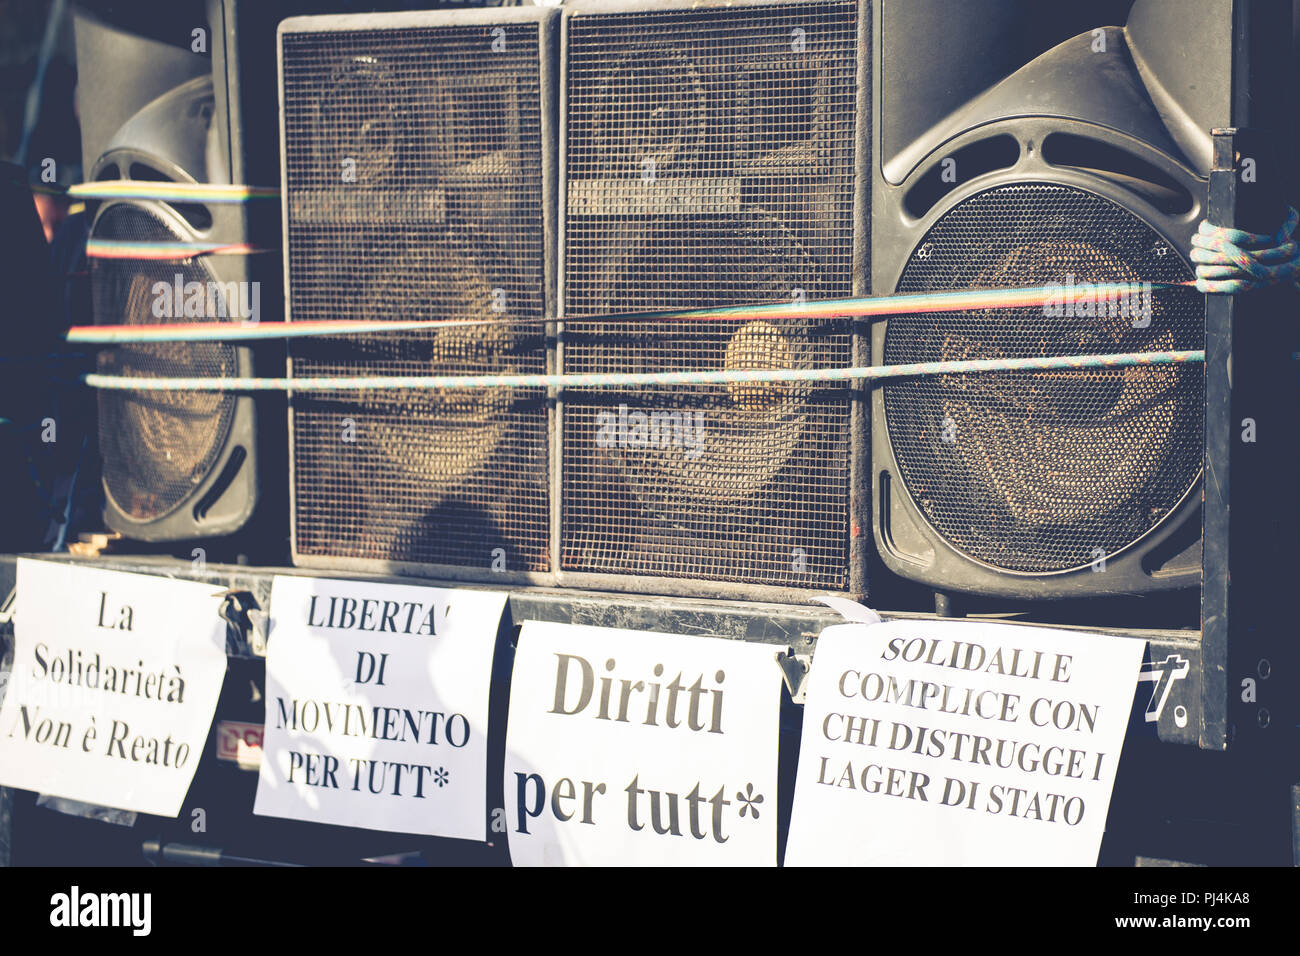 A wall of audio speakers and Italian anti-racist slogans - Stock Image